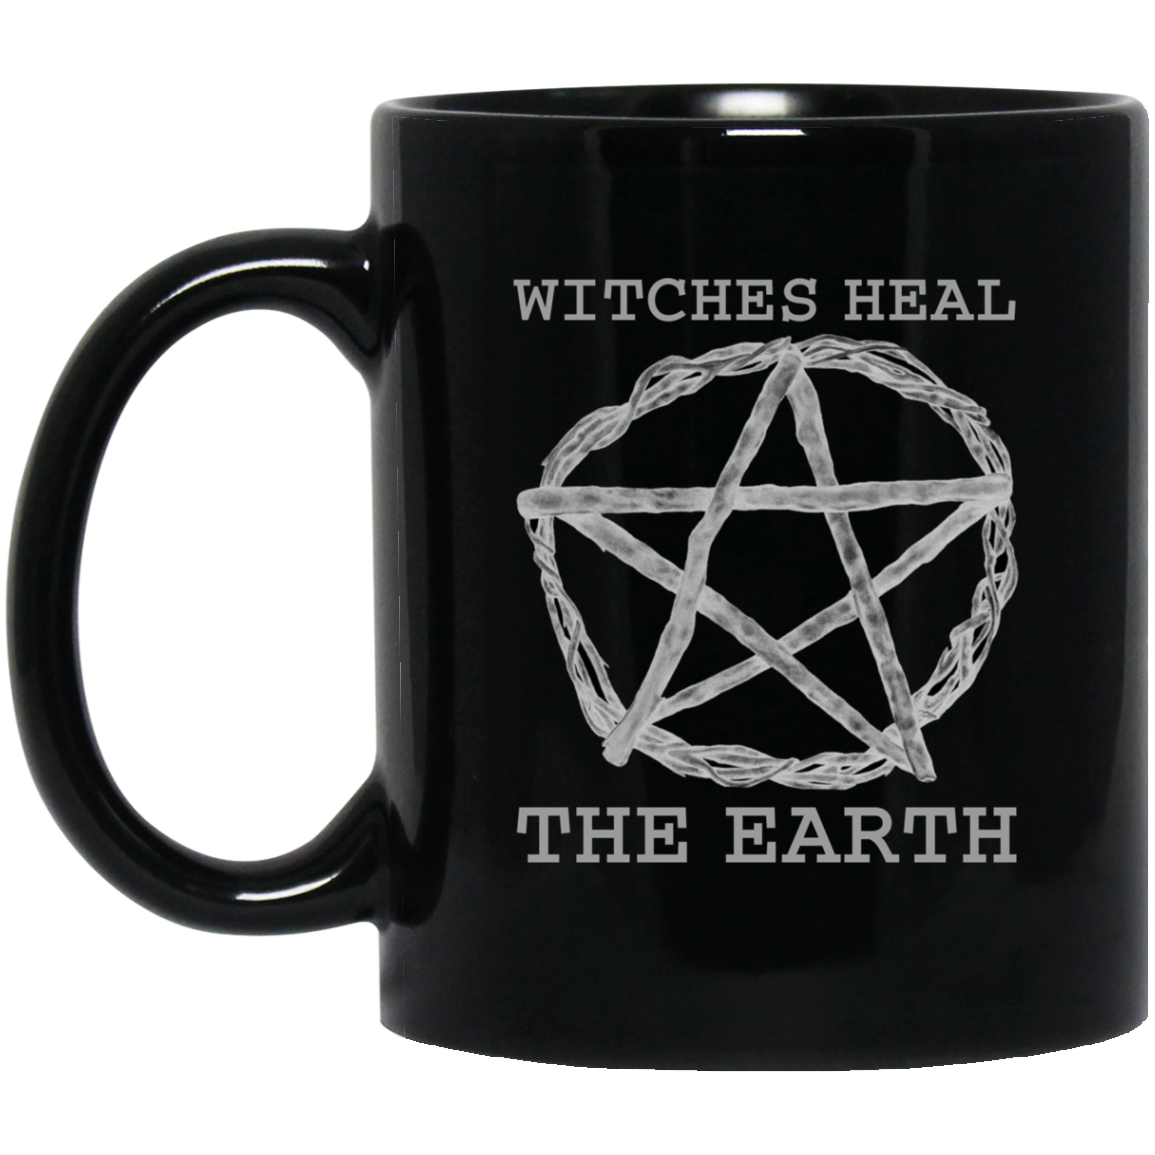 Earth Mugs Earth Water Air Fire Mug For Wiccans Pagans And Witches